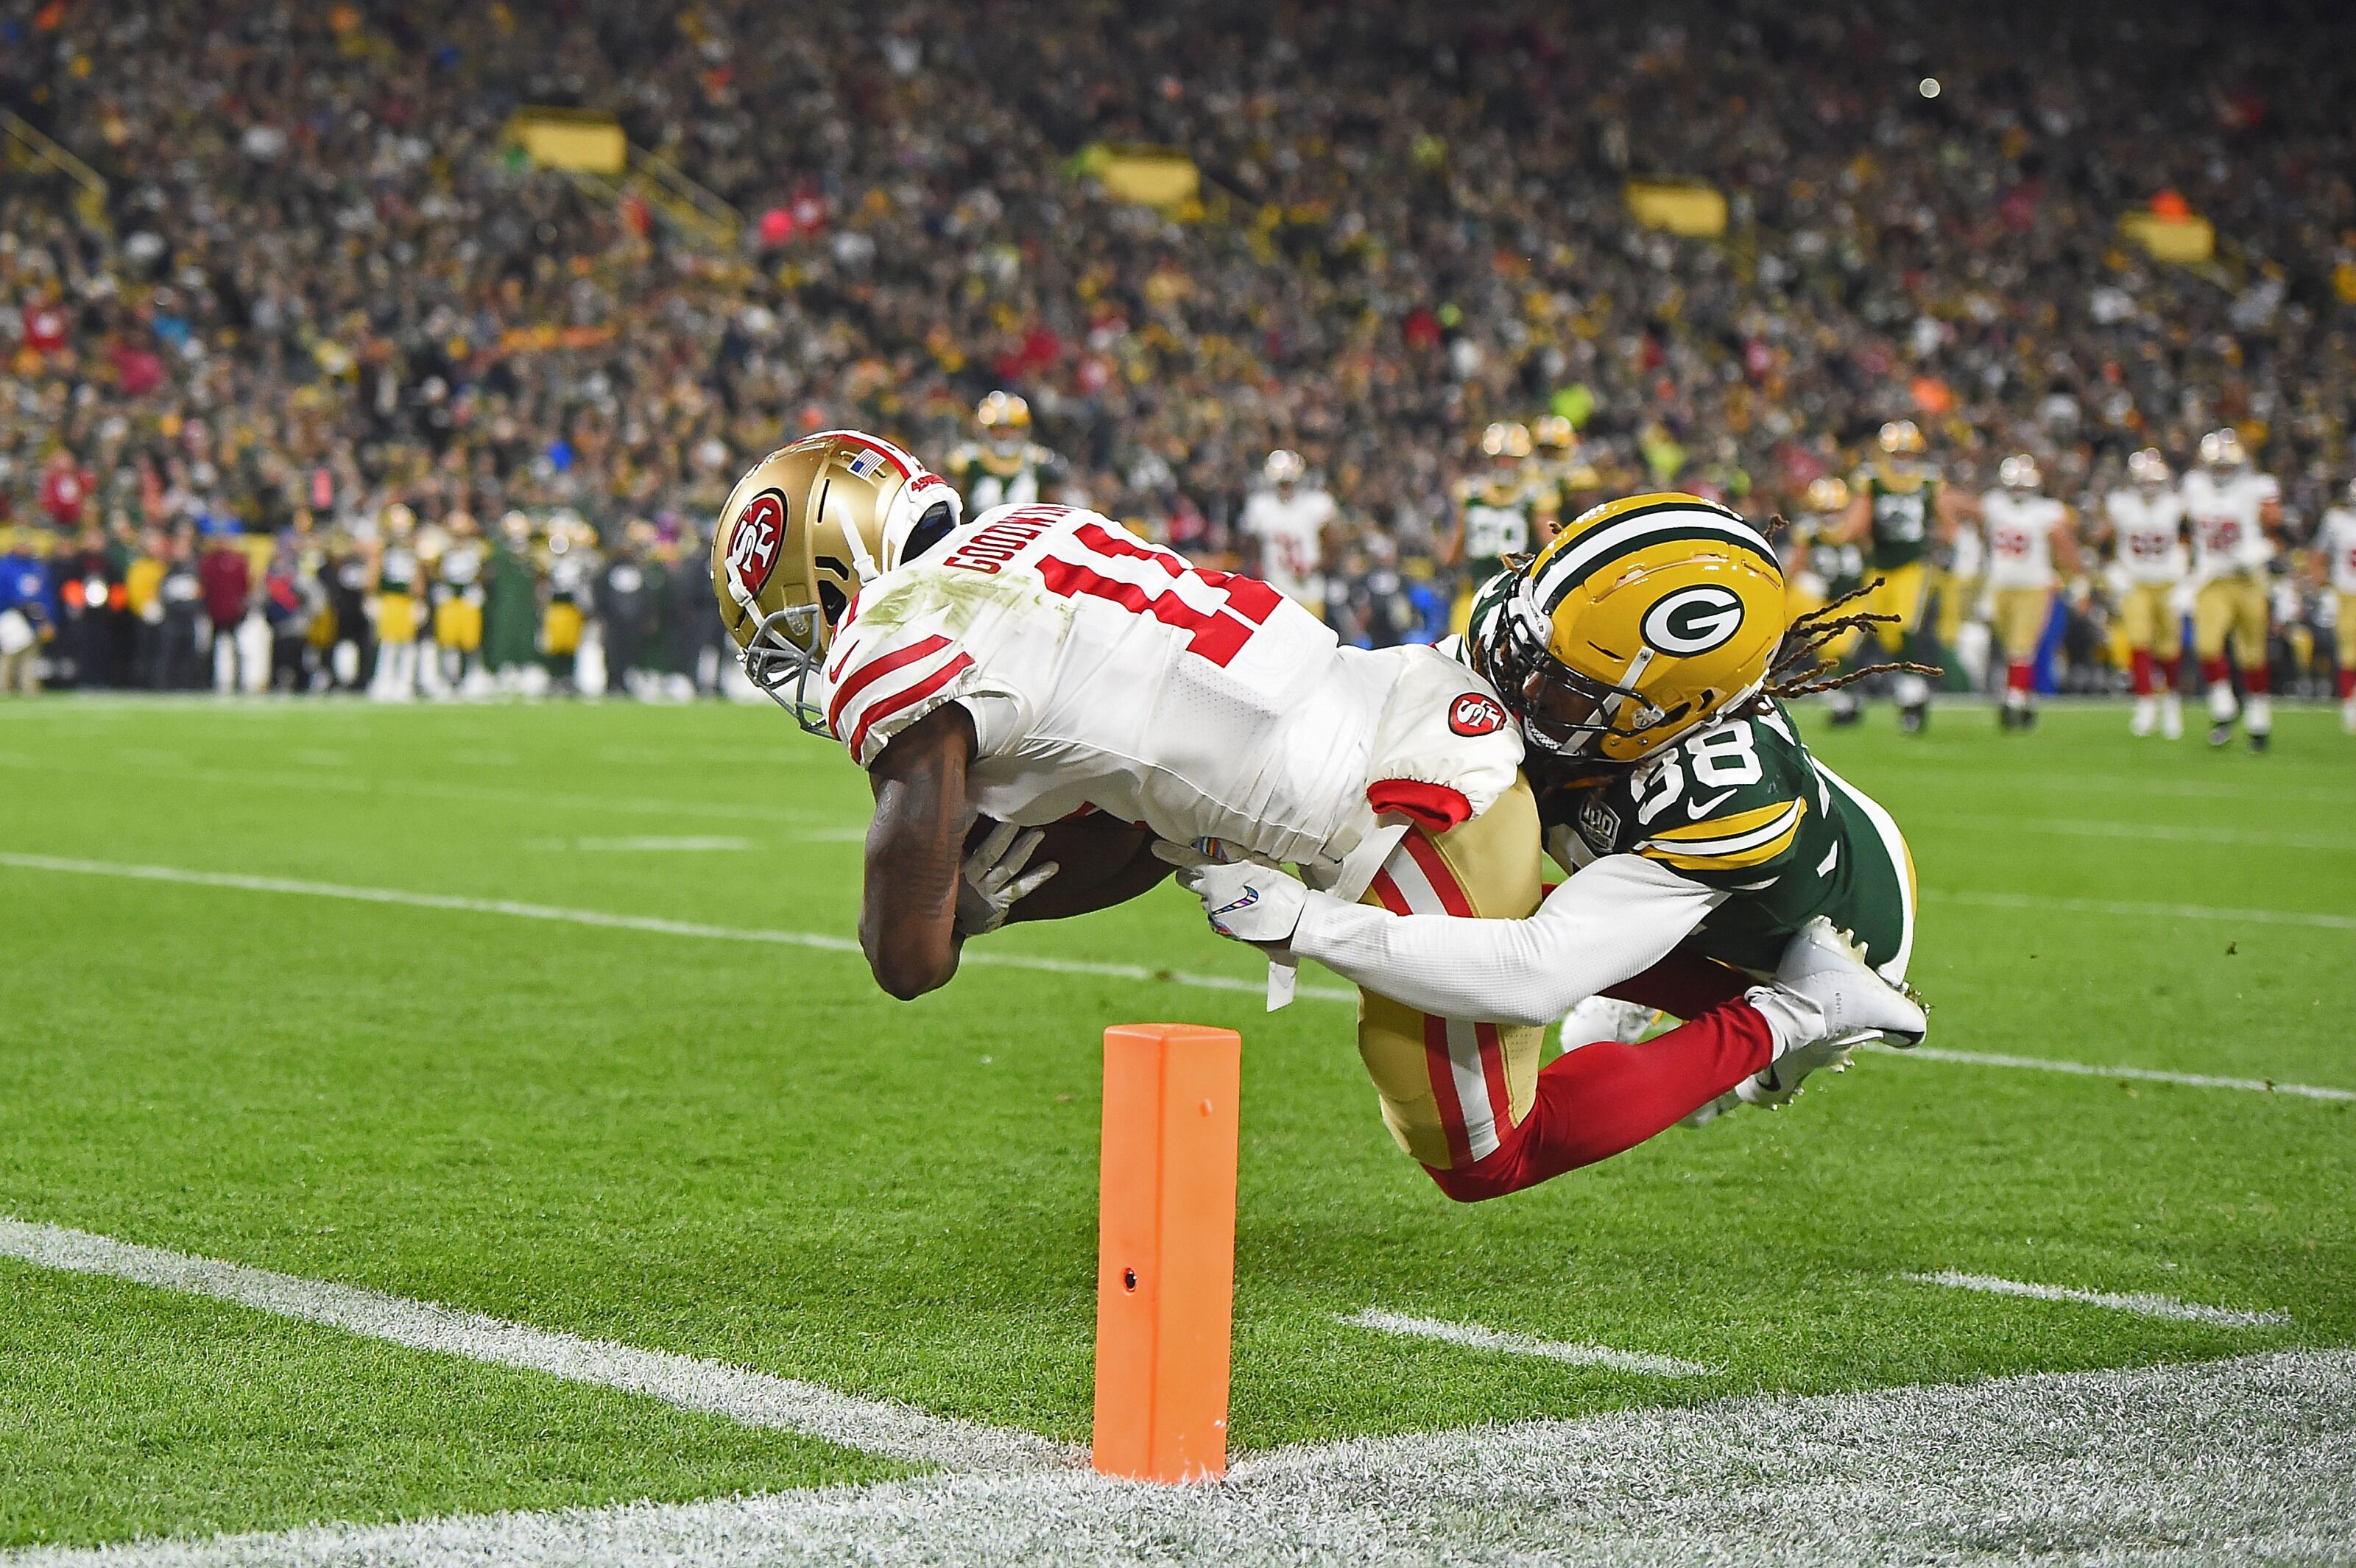 Green Bay Packers 2019 opponent preview: San Francisco 49ers